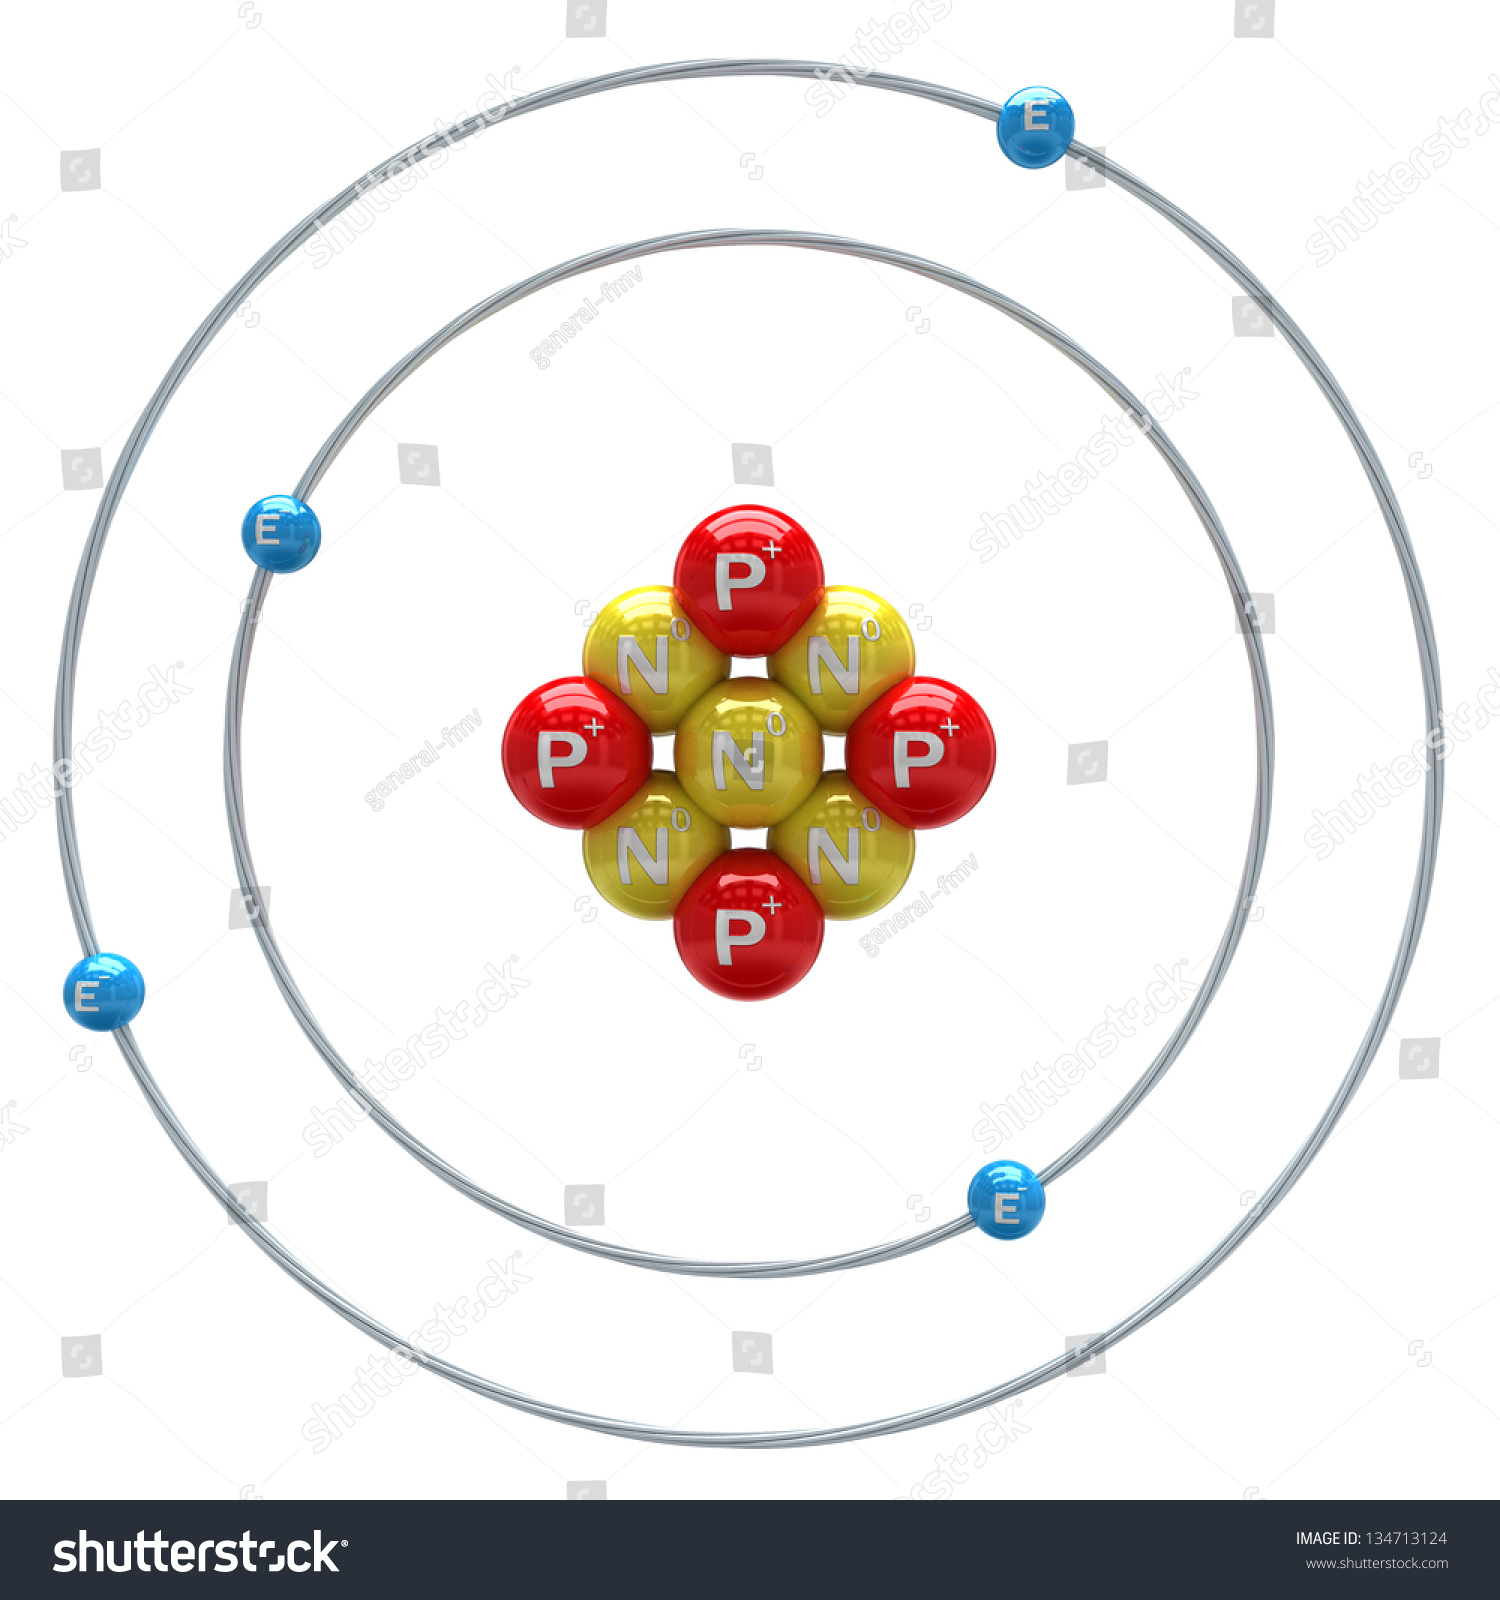 Beryllium atom on white background videos stock illustration beryllium atom on a white background videos are available ccuart Image collections